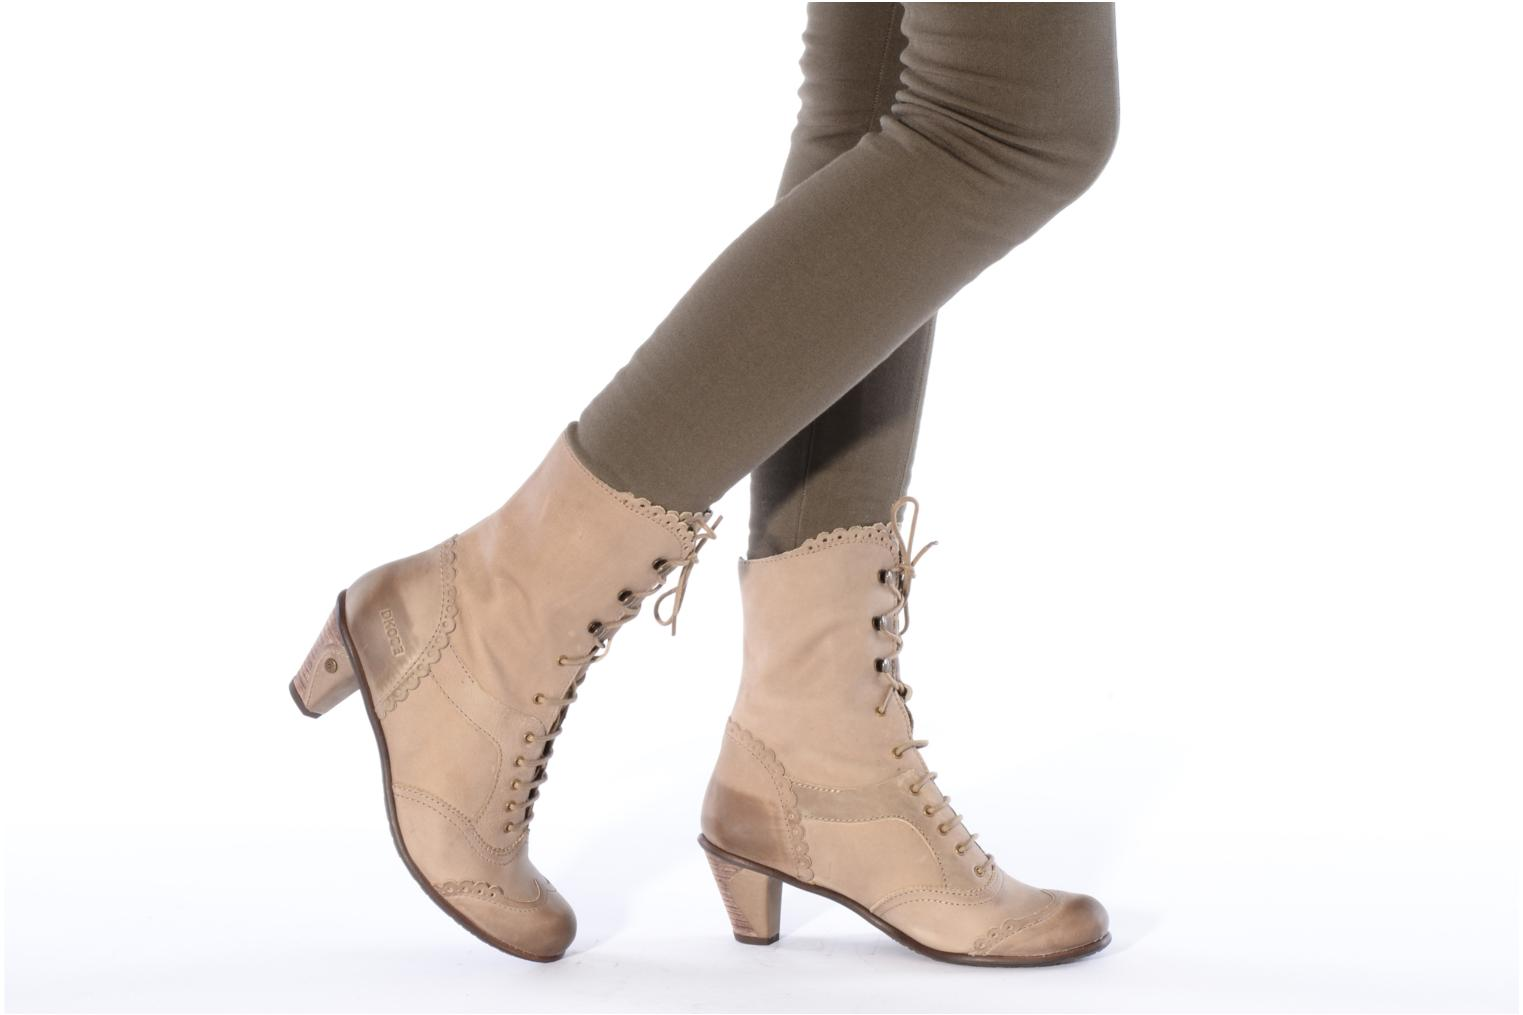 Vilma by Dkode (Beige) | Sarenza UK | Your Ankle boots Vilma Dkode delivered for Free